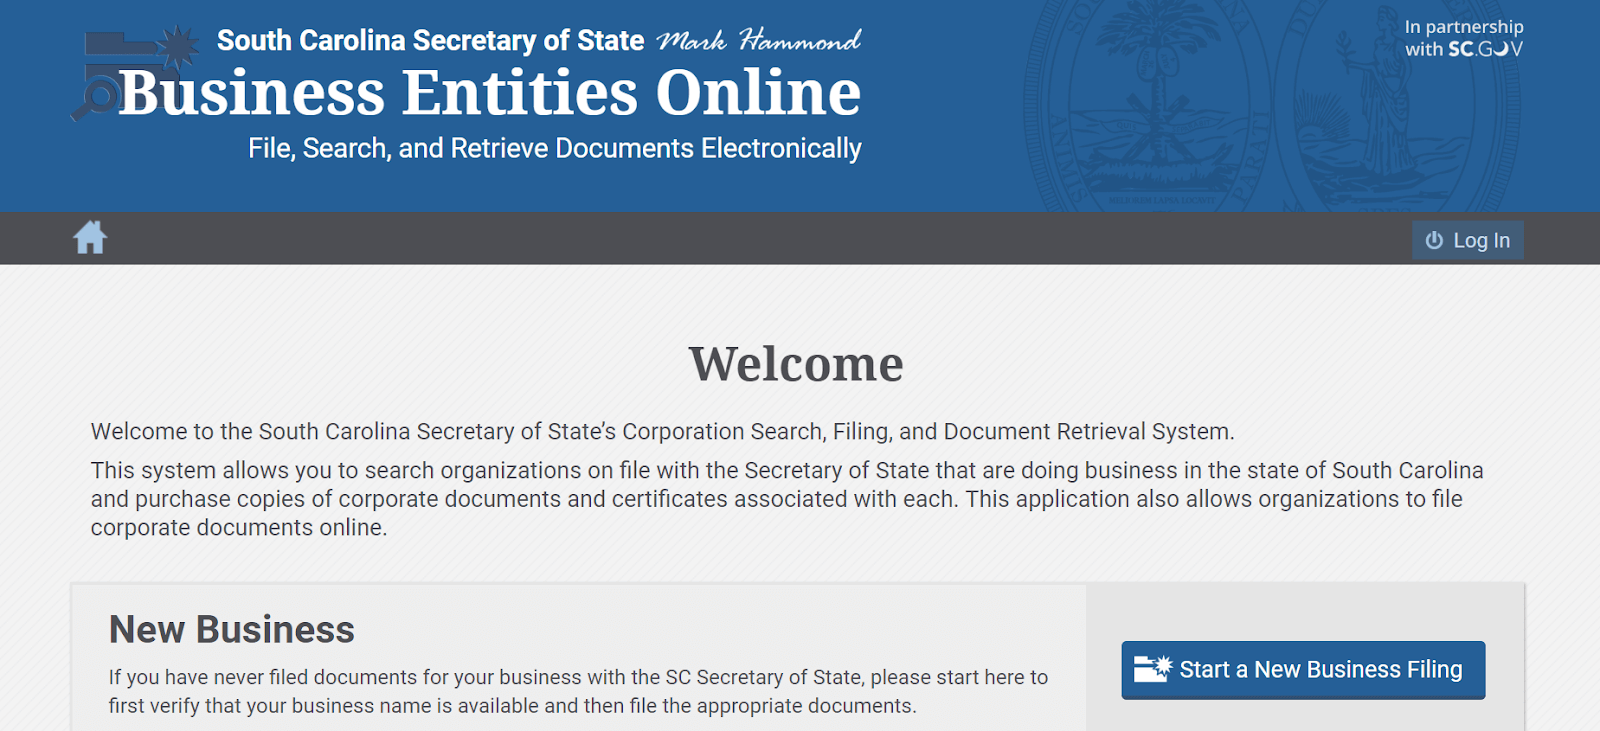 Screenshot of SC Secretary of State's Business Entities Online system